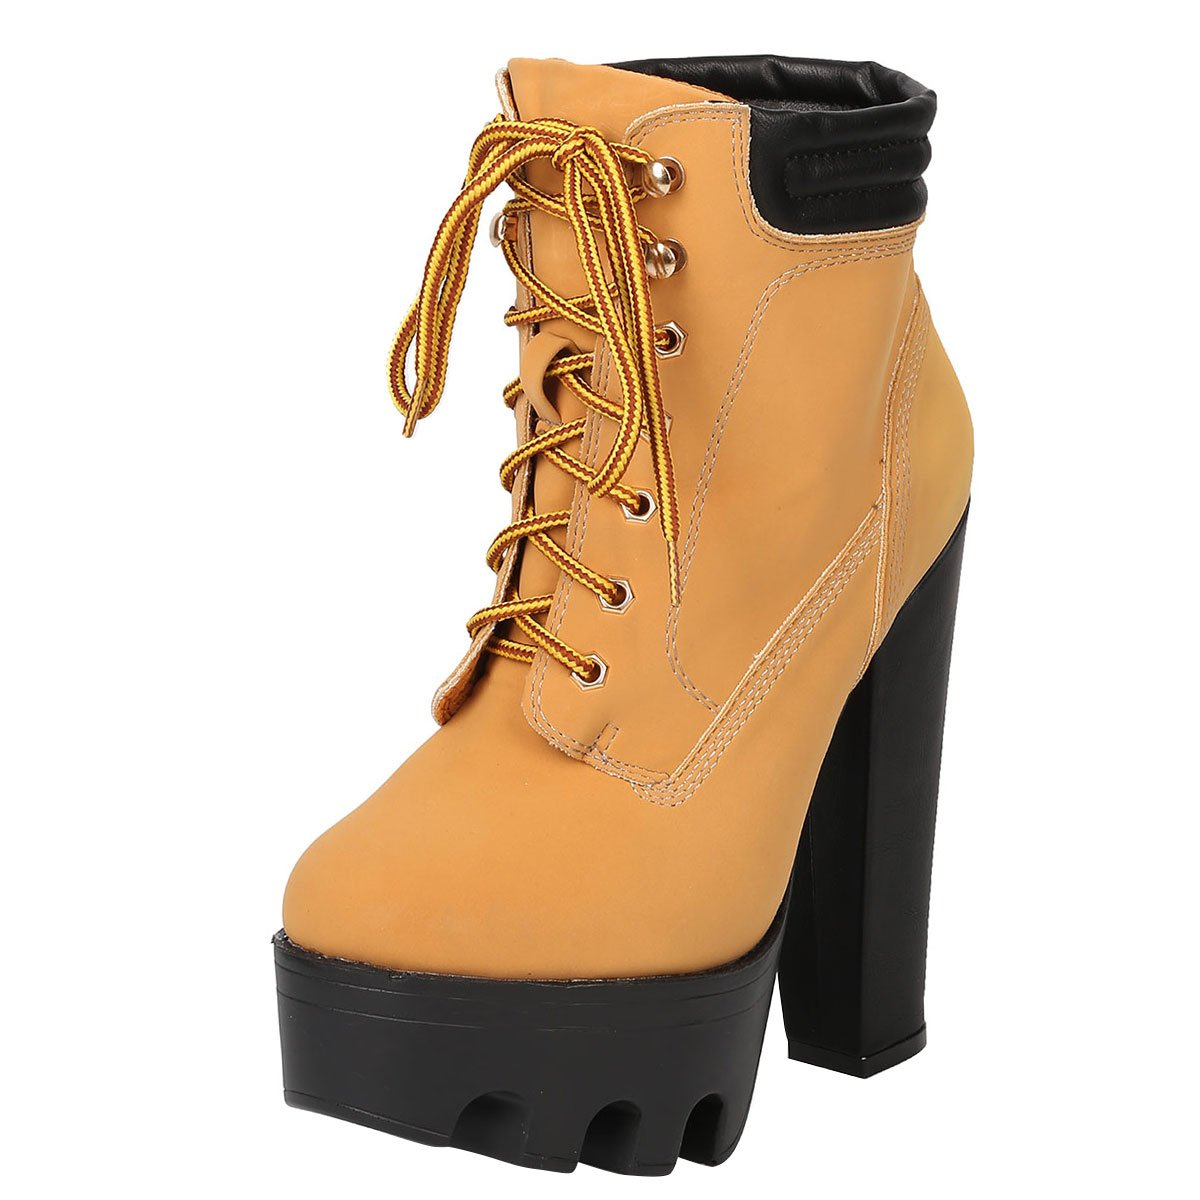 09c1af95eee Wild Diva Womens Round Toe Lace Up Lug Sole Platform Chunky High Heel  Booties Boot